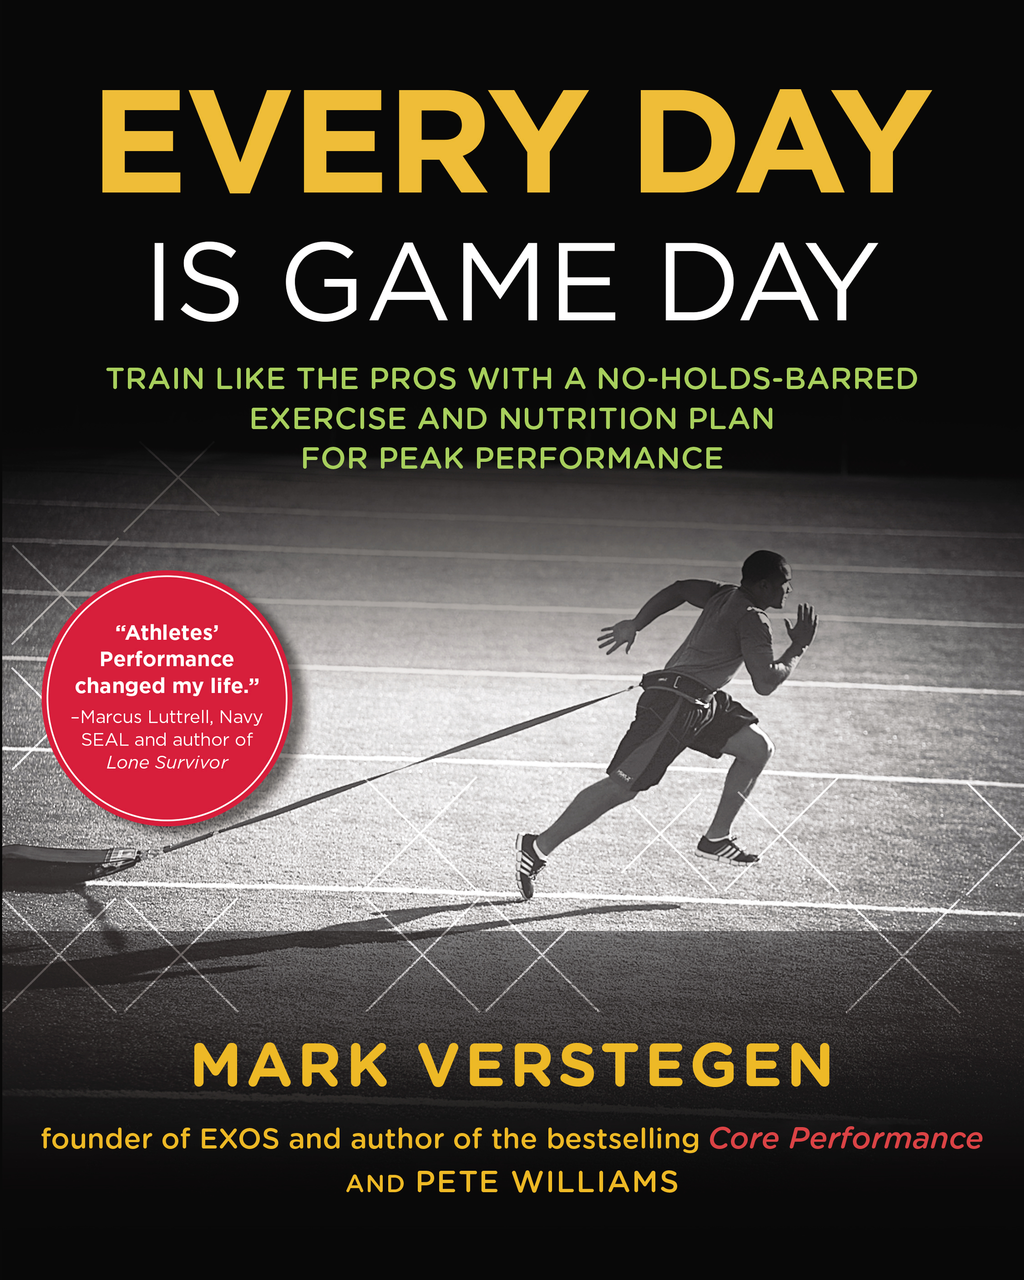 Every Day Is Game Day Train Like the Pros With a No-Holds-Barred Exercise and Nutrition Plan for PeakPerformance